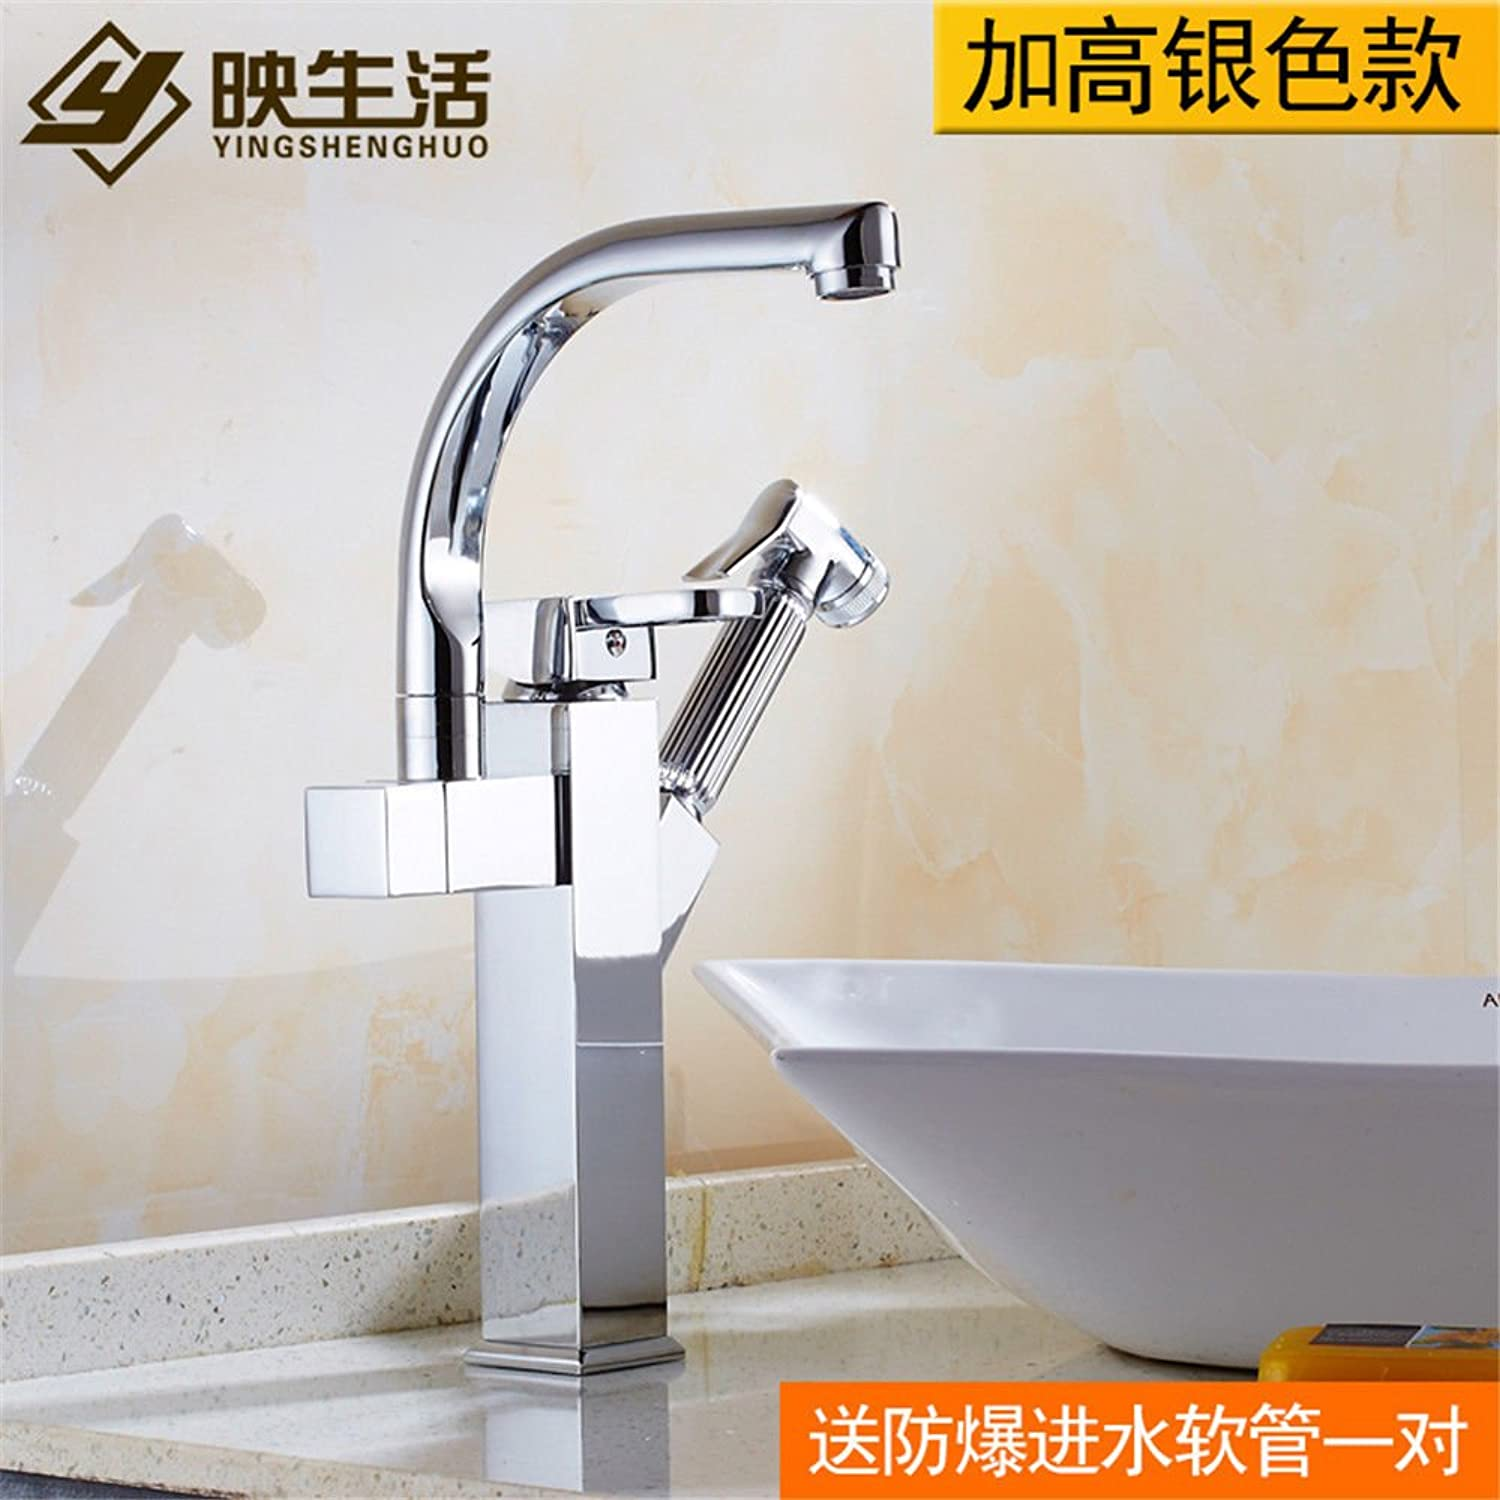 Gyps Faucet Basin Mixer Tap Waterfall Faucet Antique Bathroom Pull-down faucet kitchen faucet brass body-wide basin basin mixer can draw-down redate the dish sink mixer [High]